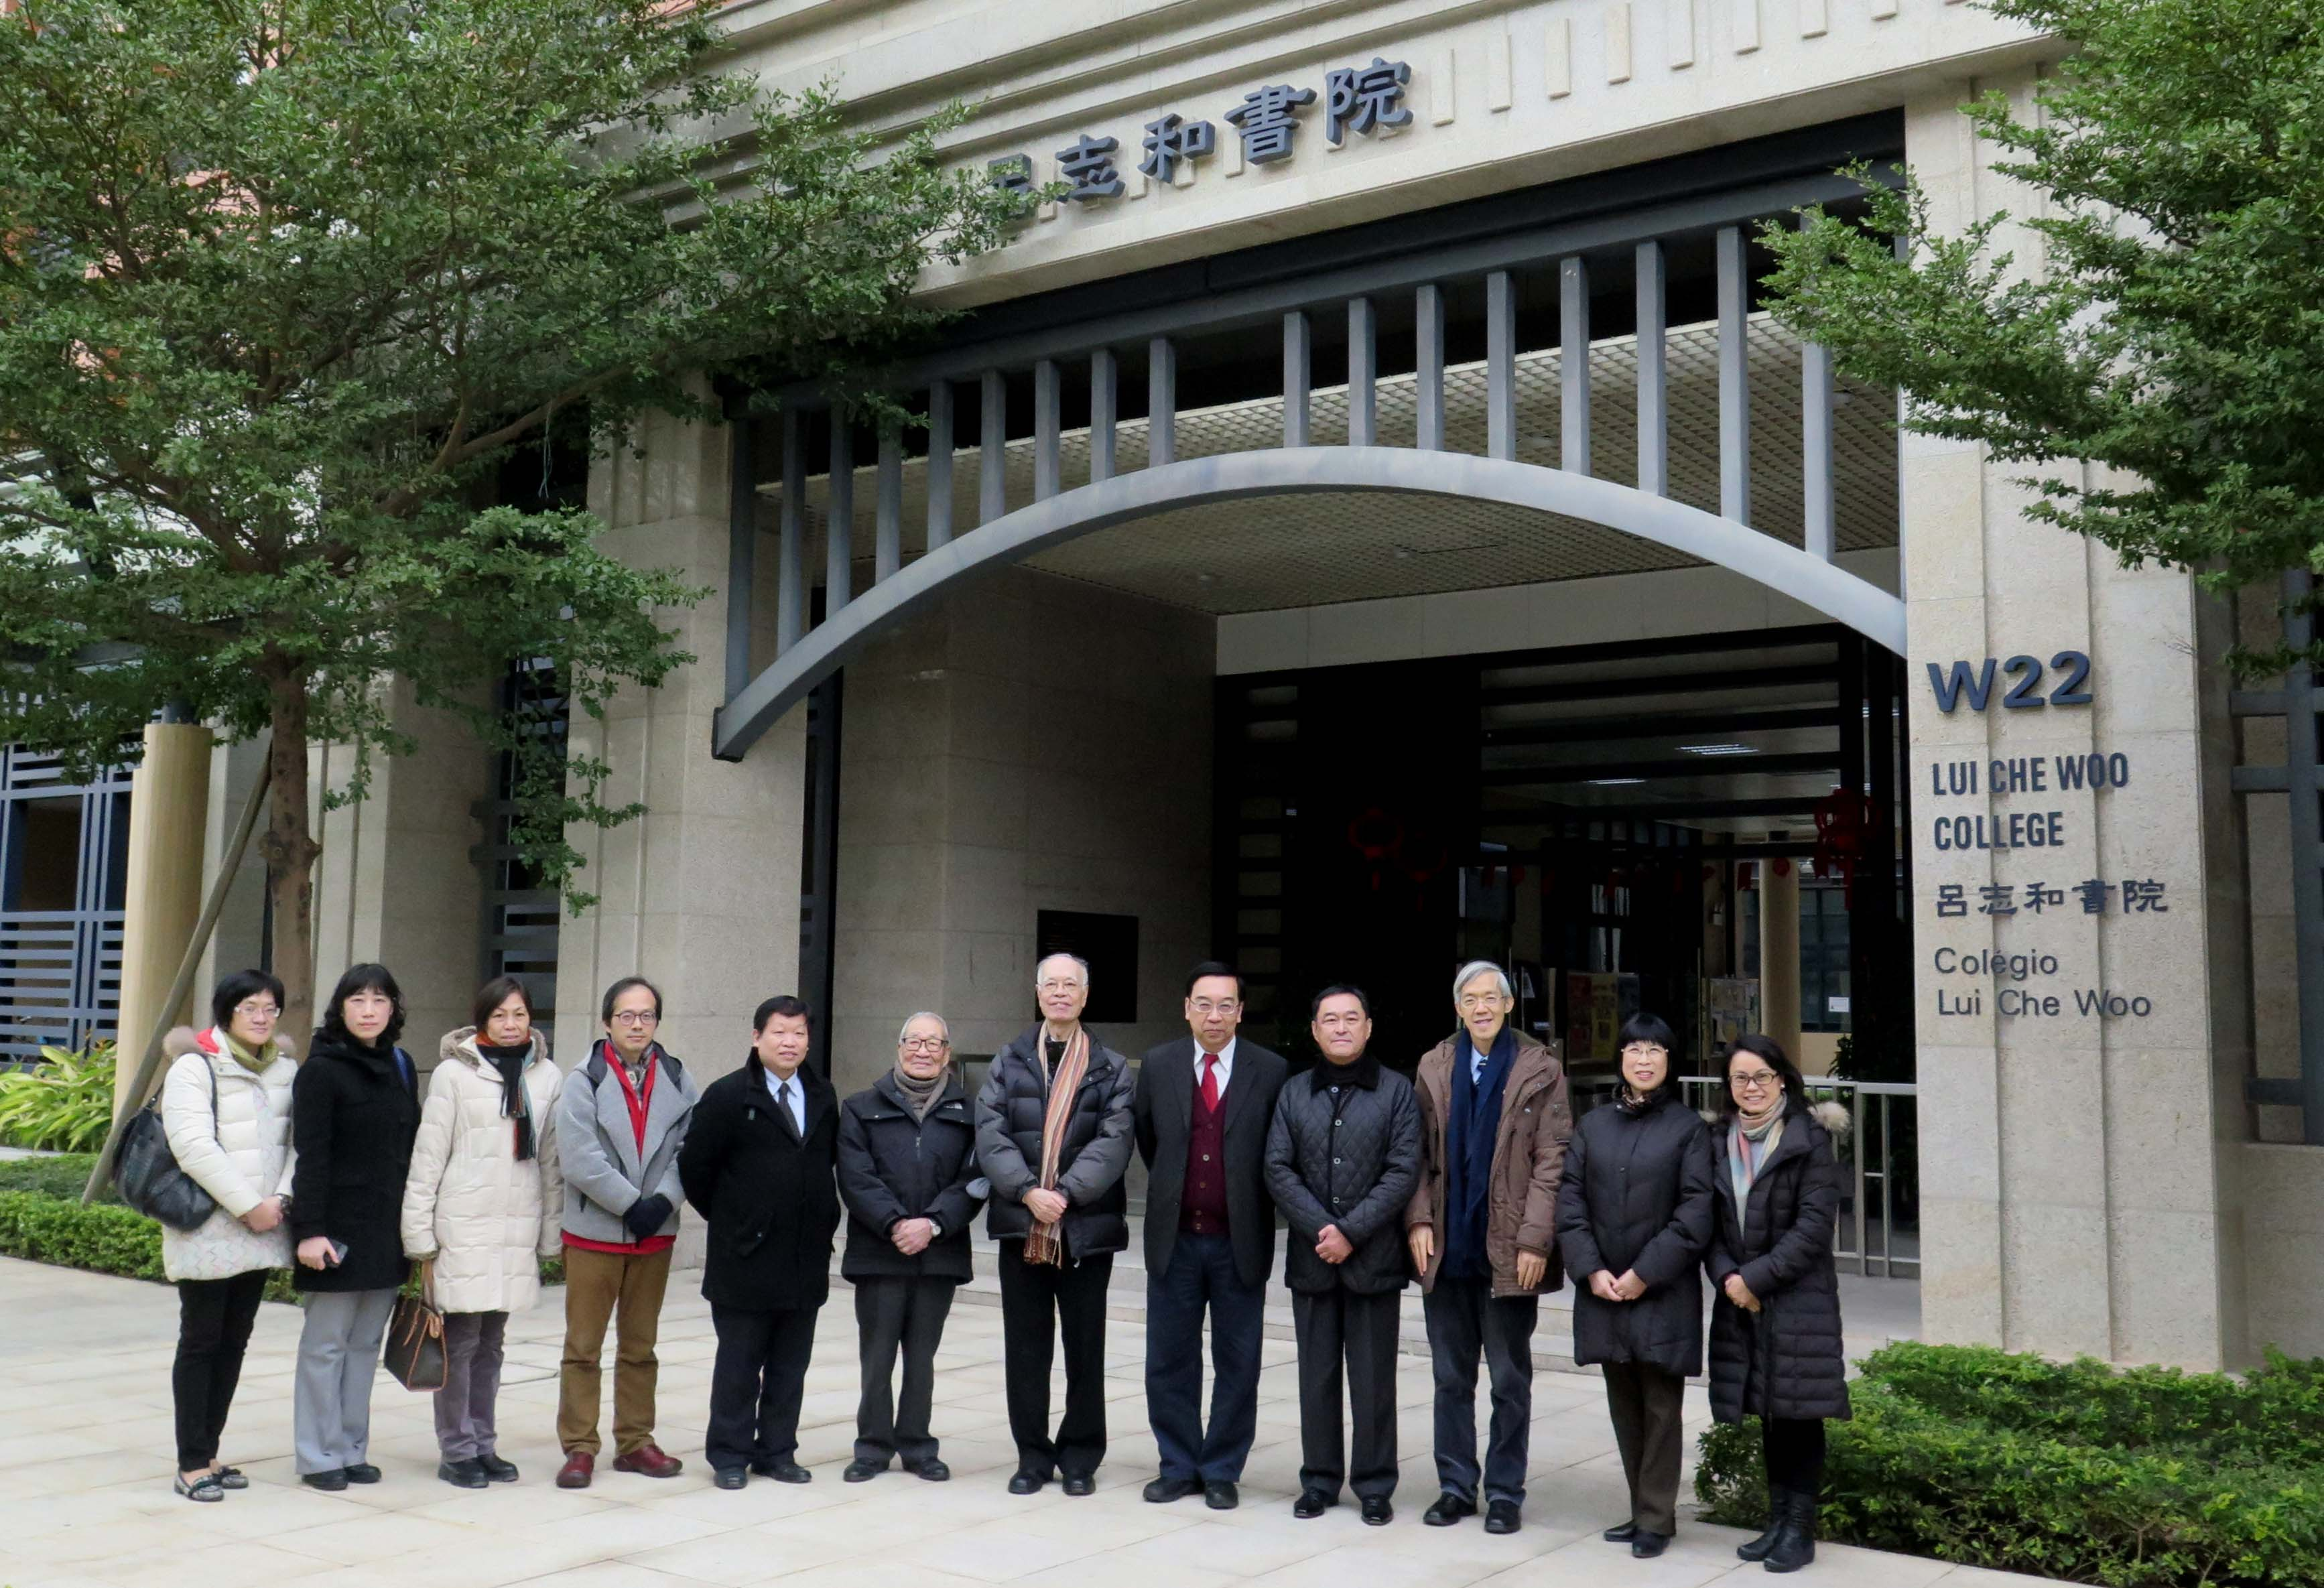 The delegation visits Lui Che Woo College